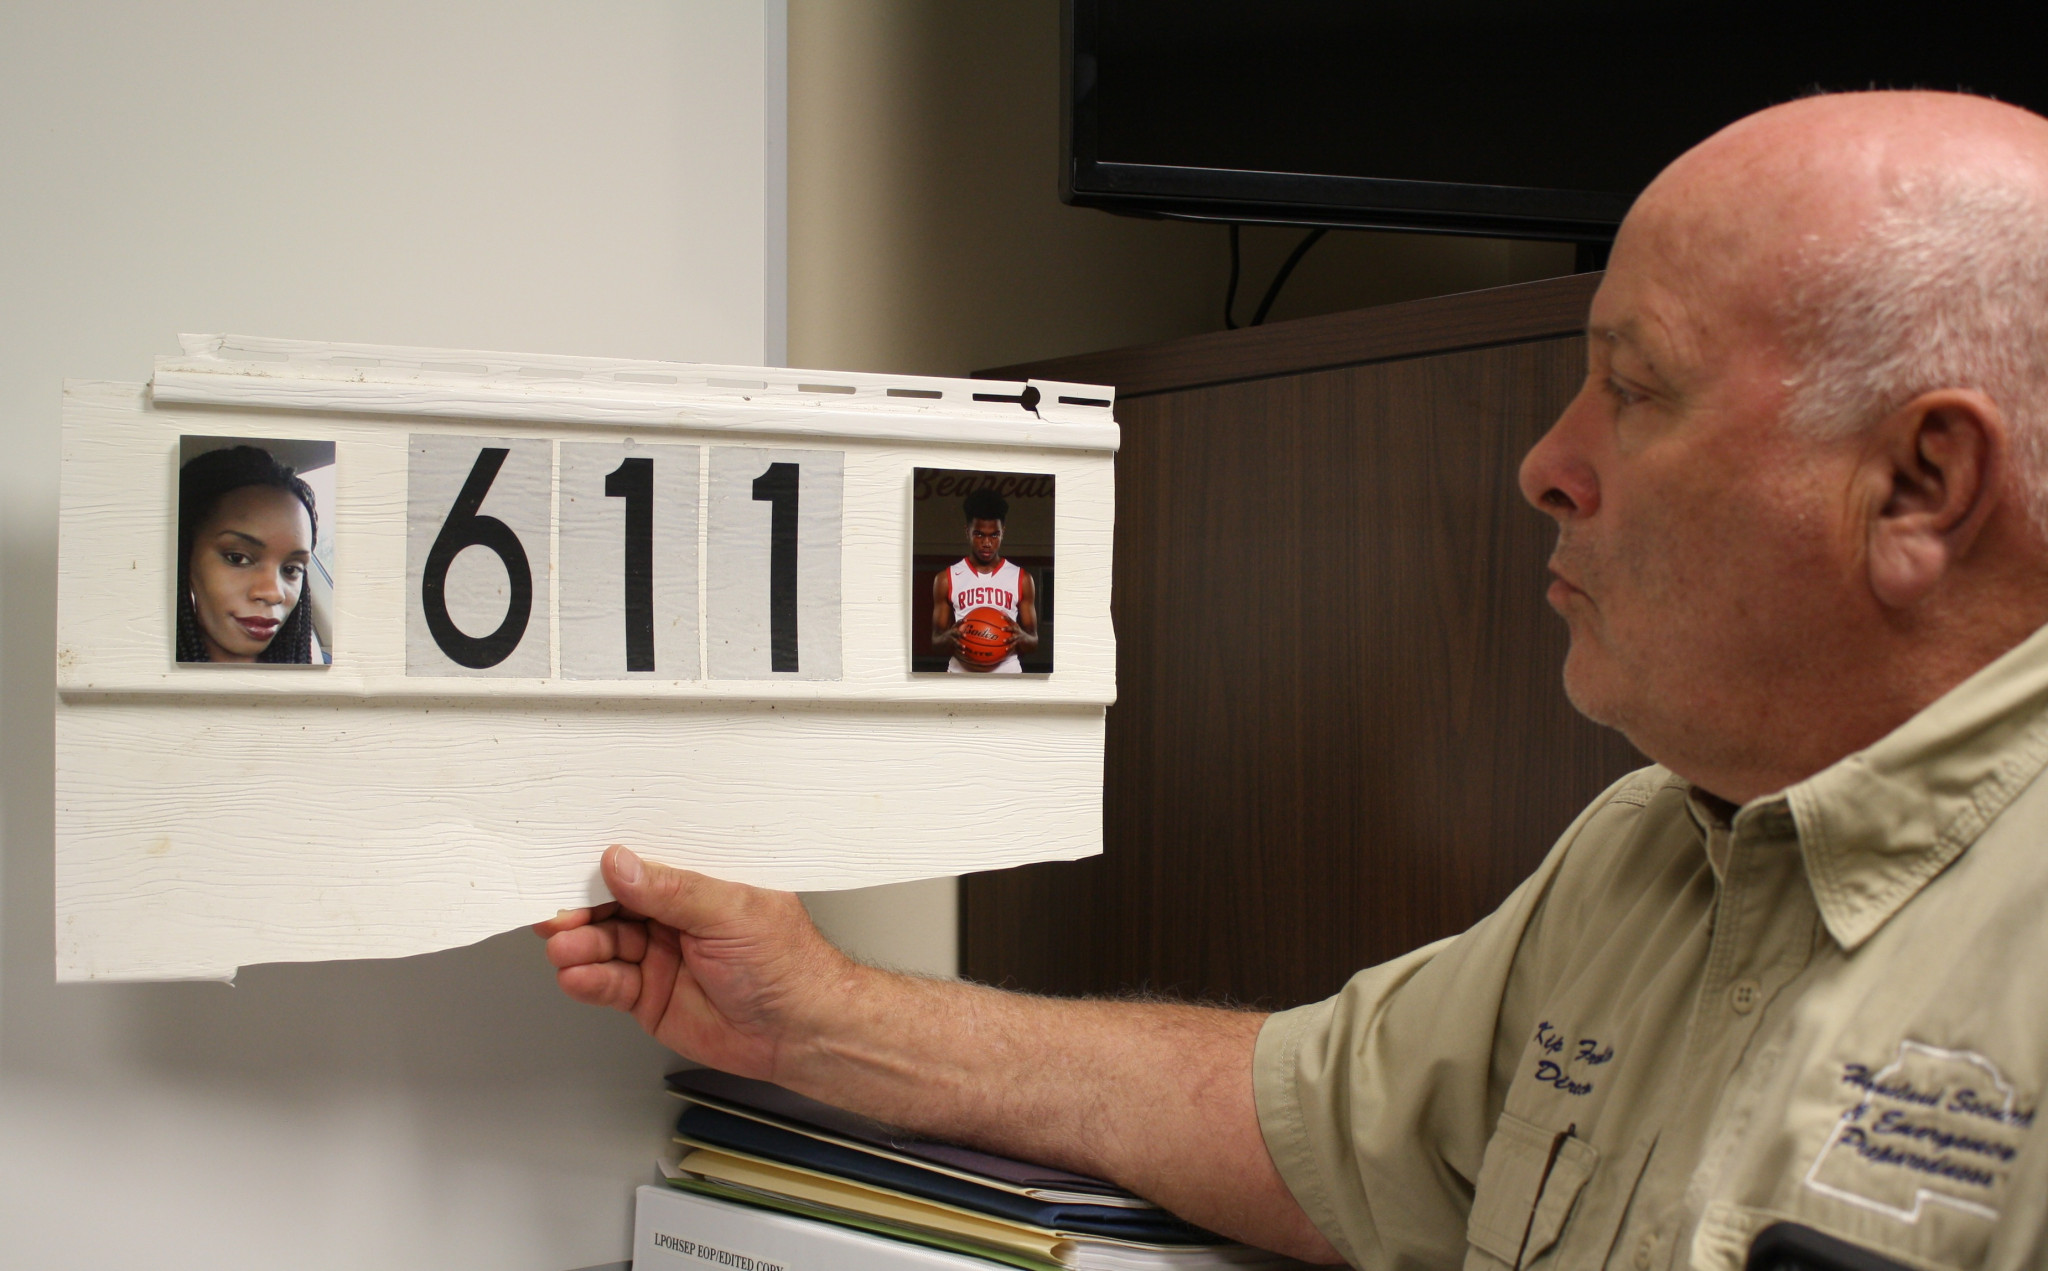 """<span style=""""font-size:12pt""""><span style=""""font-family:&quot;Times New Roman&quot;"""">Lincoln Parish Director of Homeland Security and Emergency Preparedness Kip Franklin holds a piece of siding from the Evans Street house where Kendra and Remington Butler lost their lives during the tornado. It hangs in Franklin's office with pictures of the Butlers affixed to it.</span></span>"""